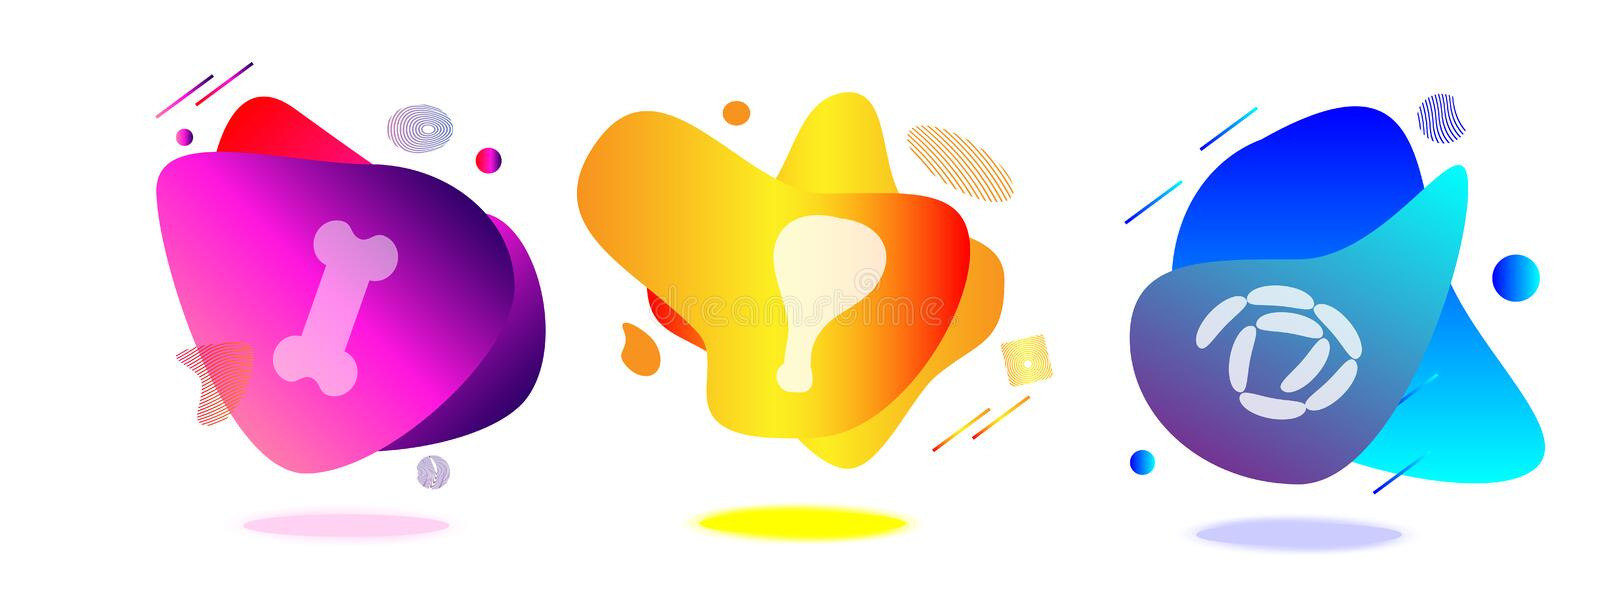 Abstract shapes and lines for icons. stock illustration